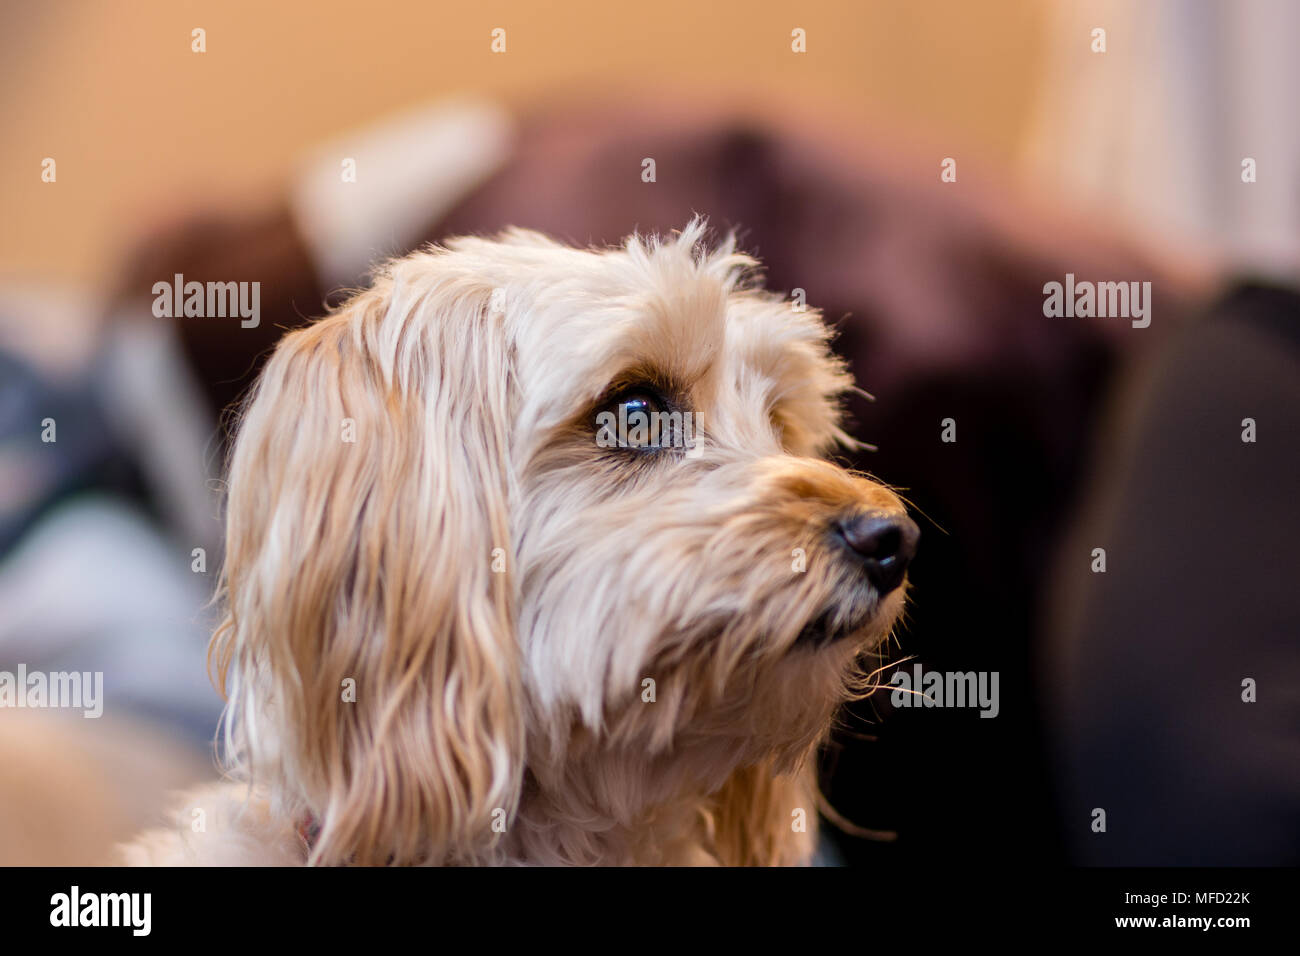 Female Maltipoo dog poses for a picture - Stock Image